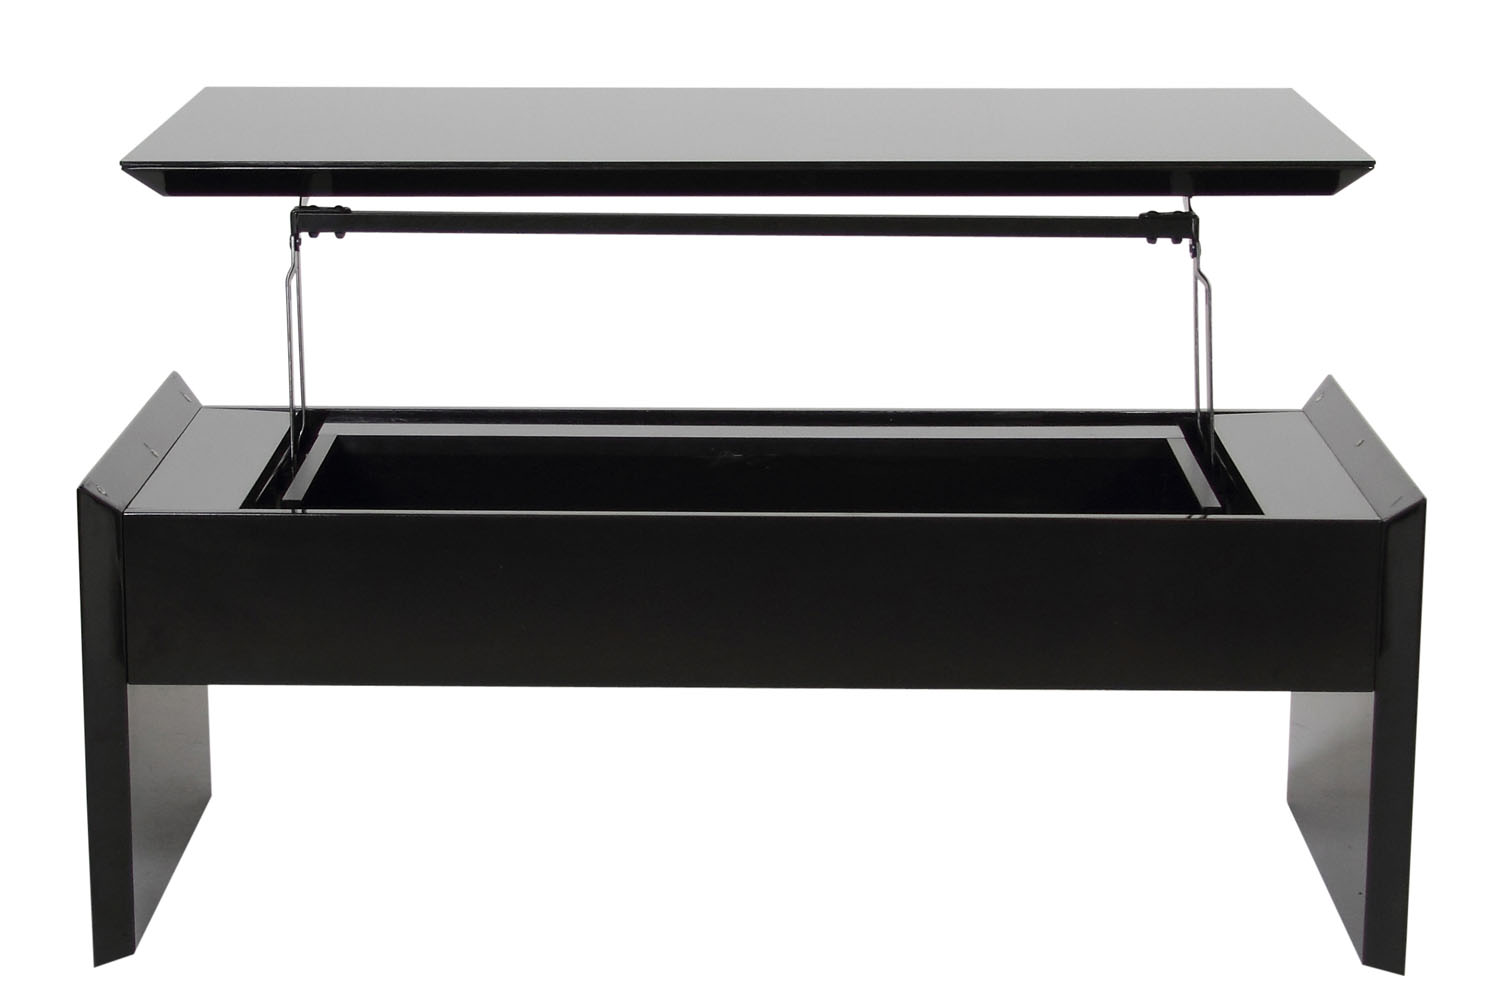 Table basse repas fly mobilier design d coration d 39 int rieur - Table relevable fly ...